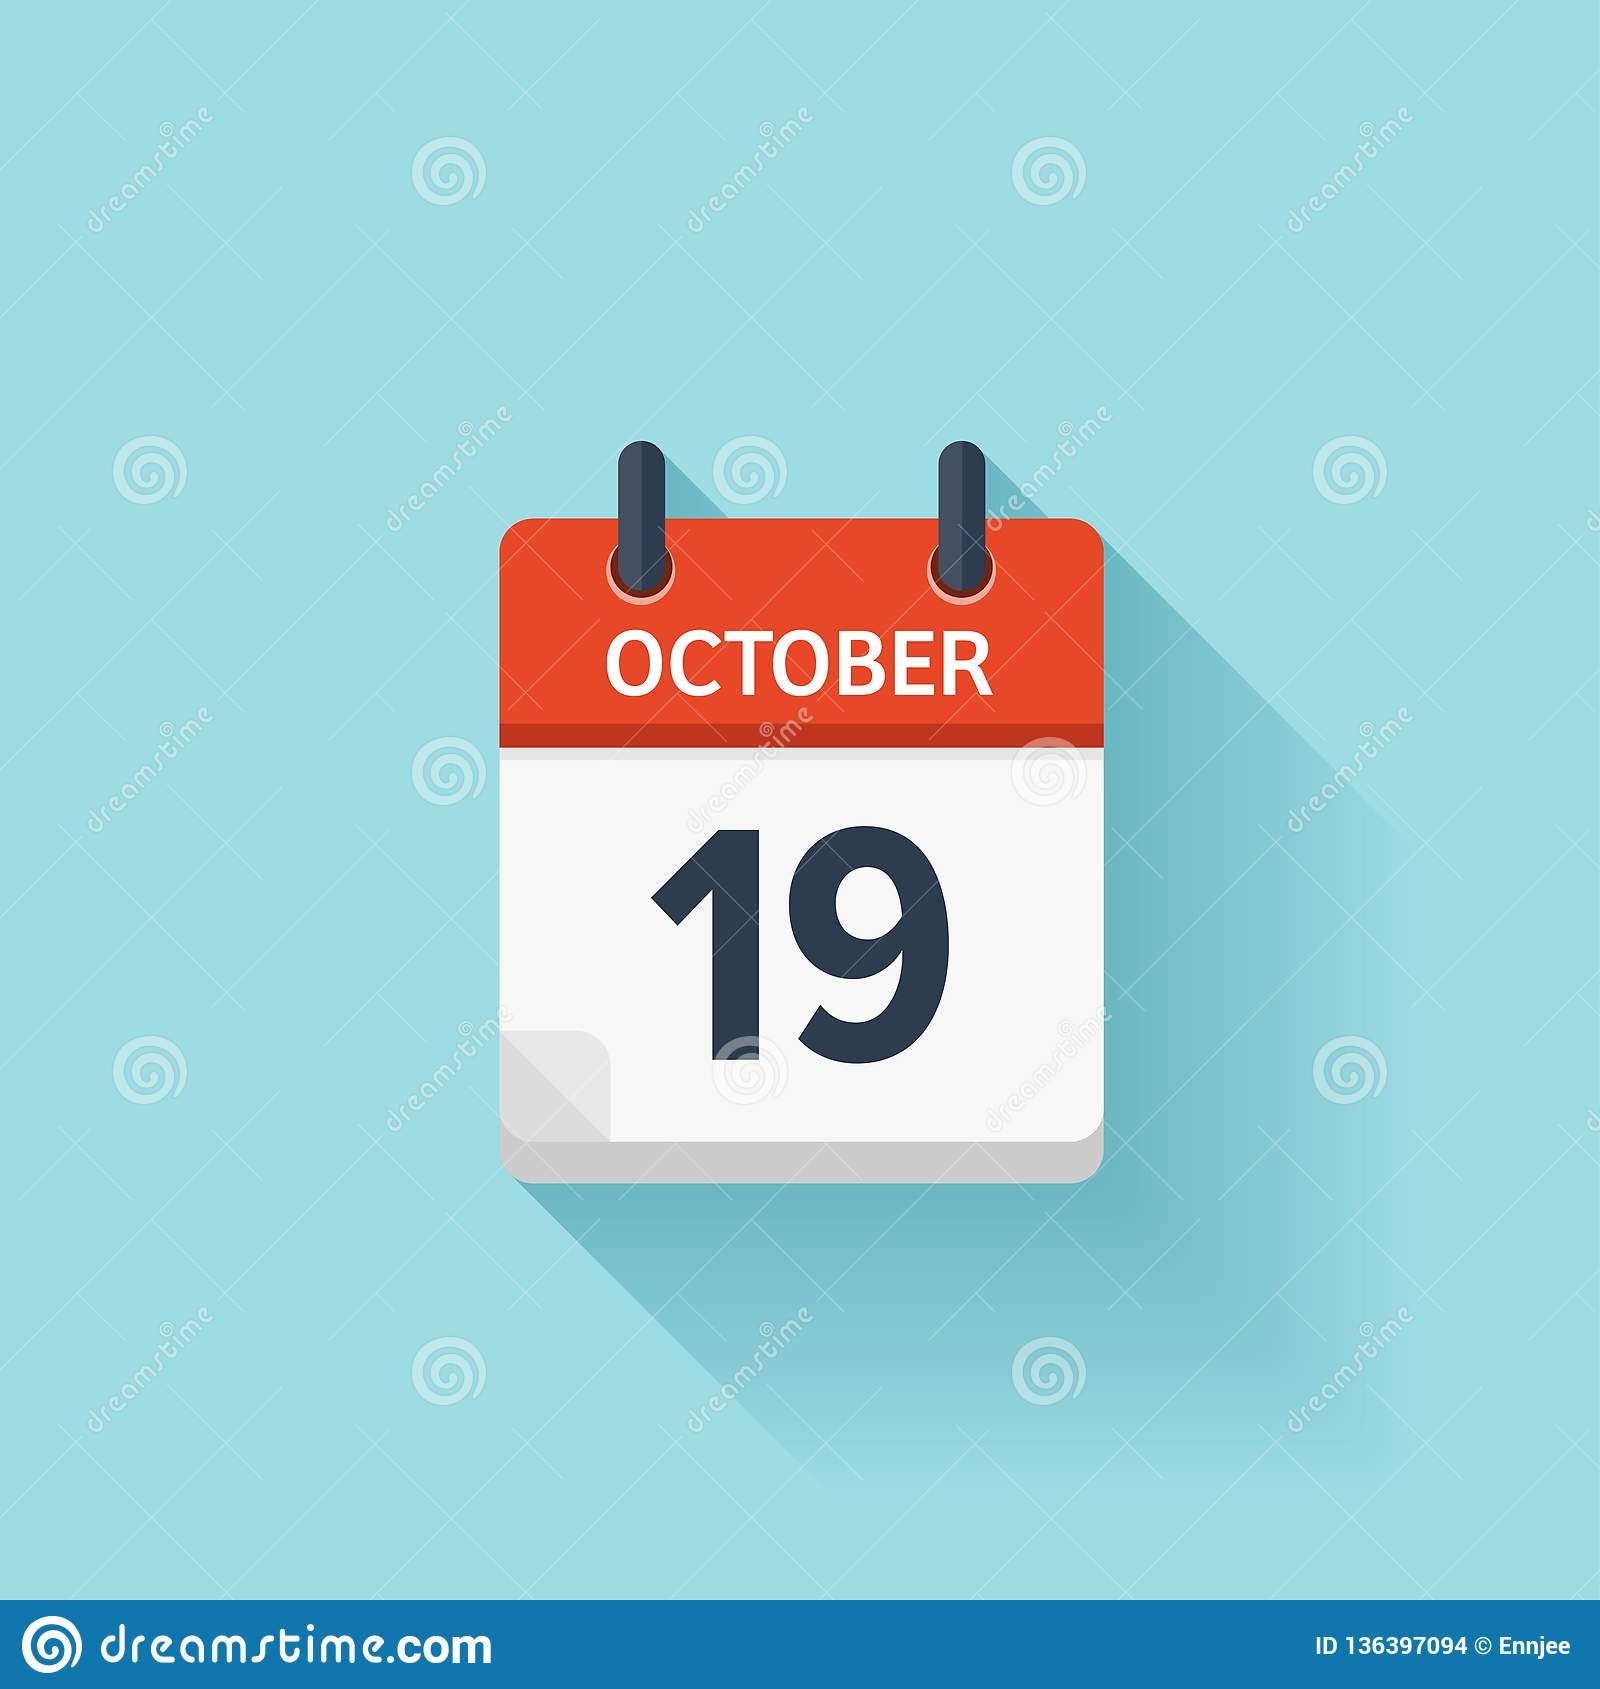 Daily Holiday Calendar.October 19 Vector Flat Daily Calendar Icon Date And Time Day